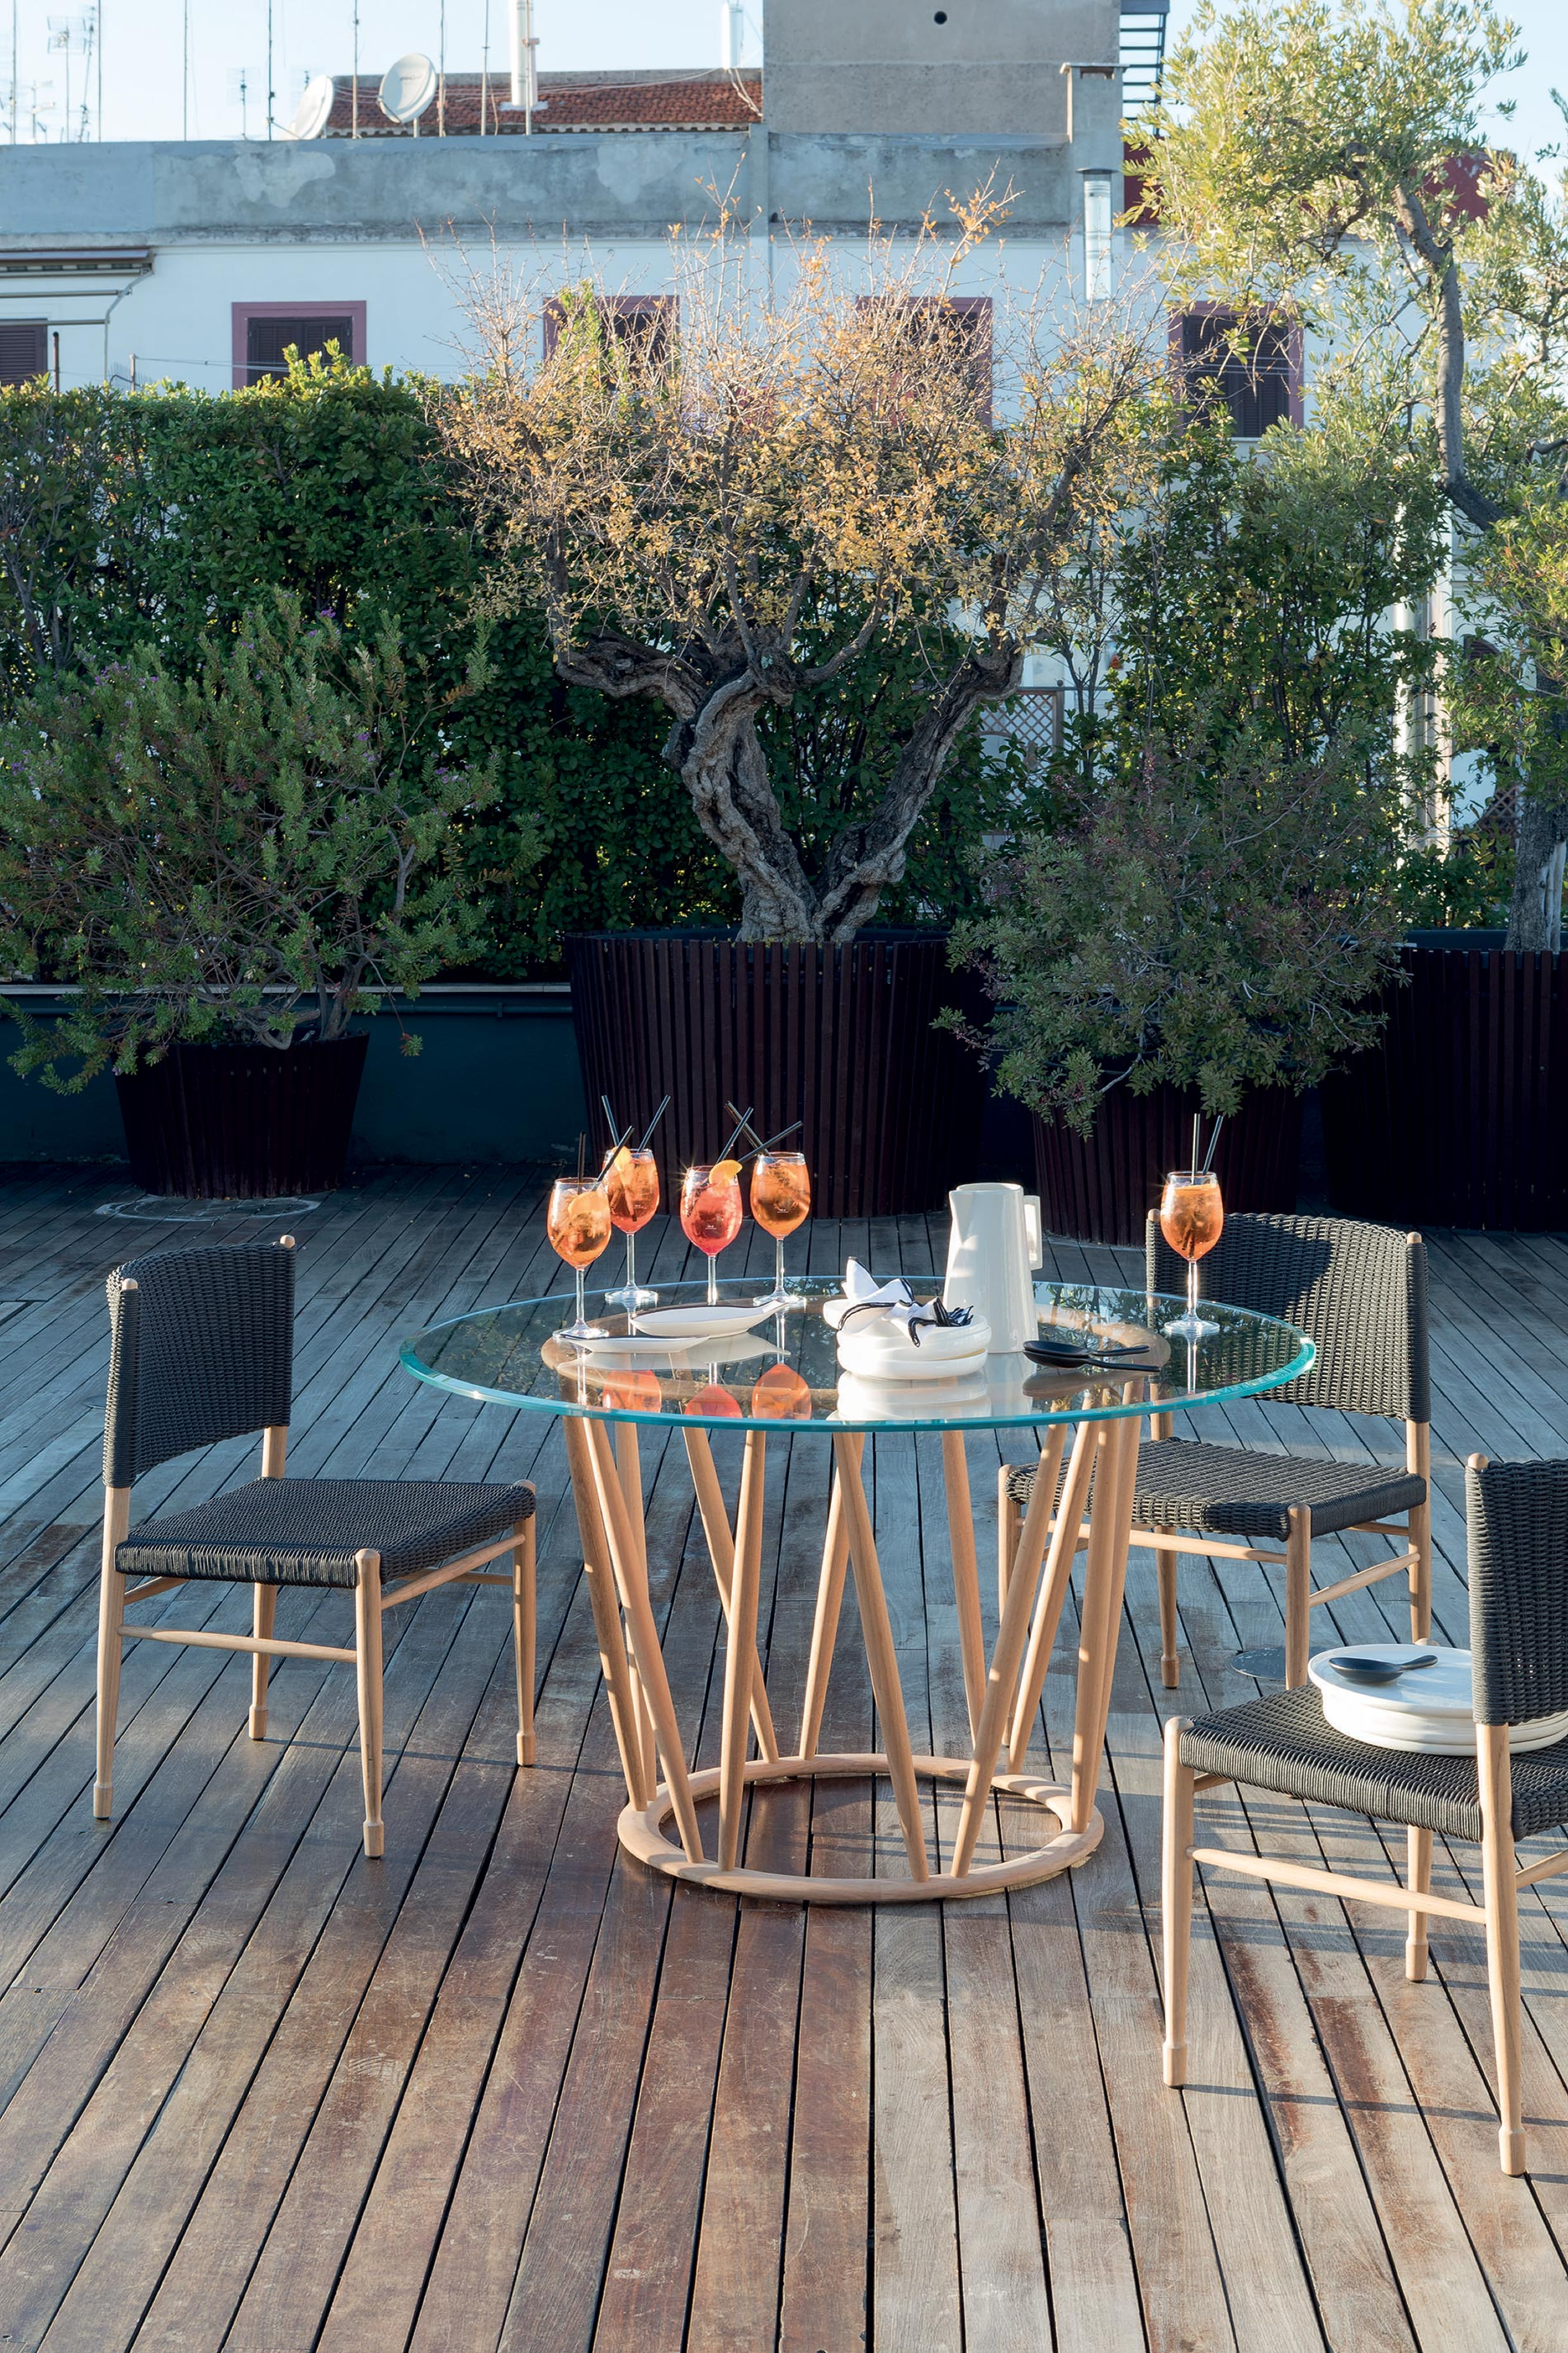 unopiù how to furnish your terraceunopiù how to furnish your terrace